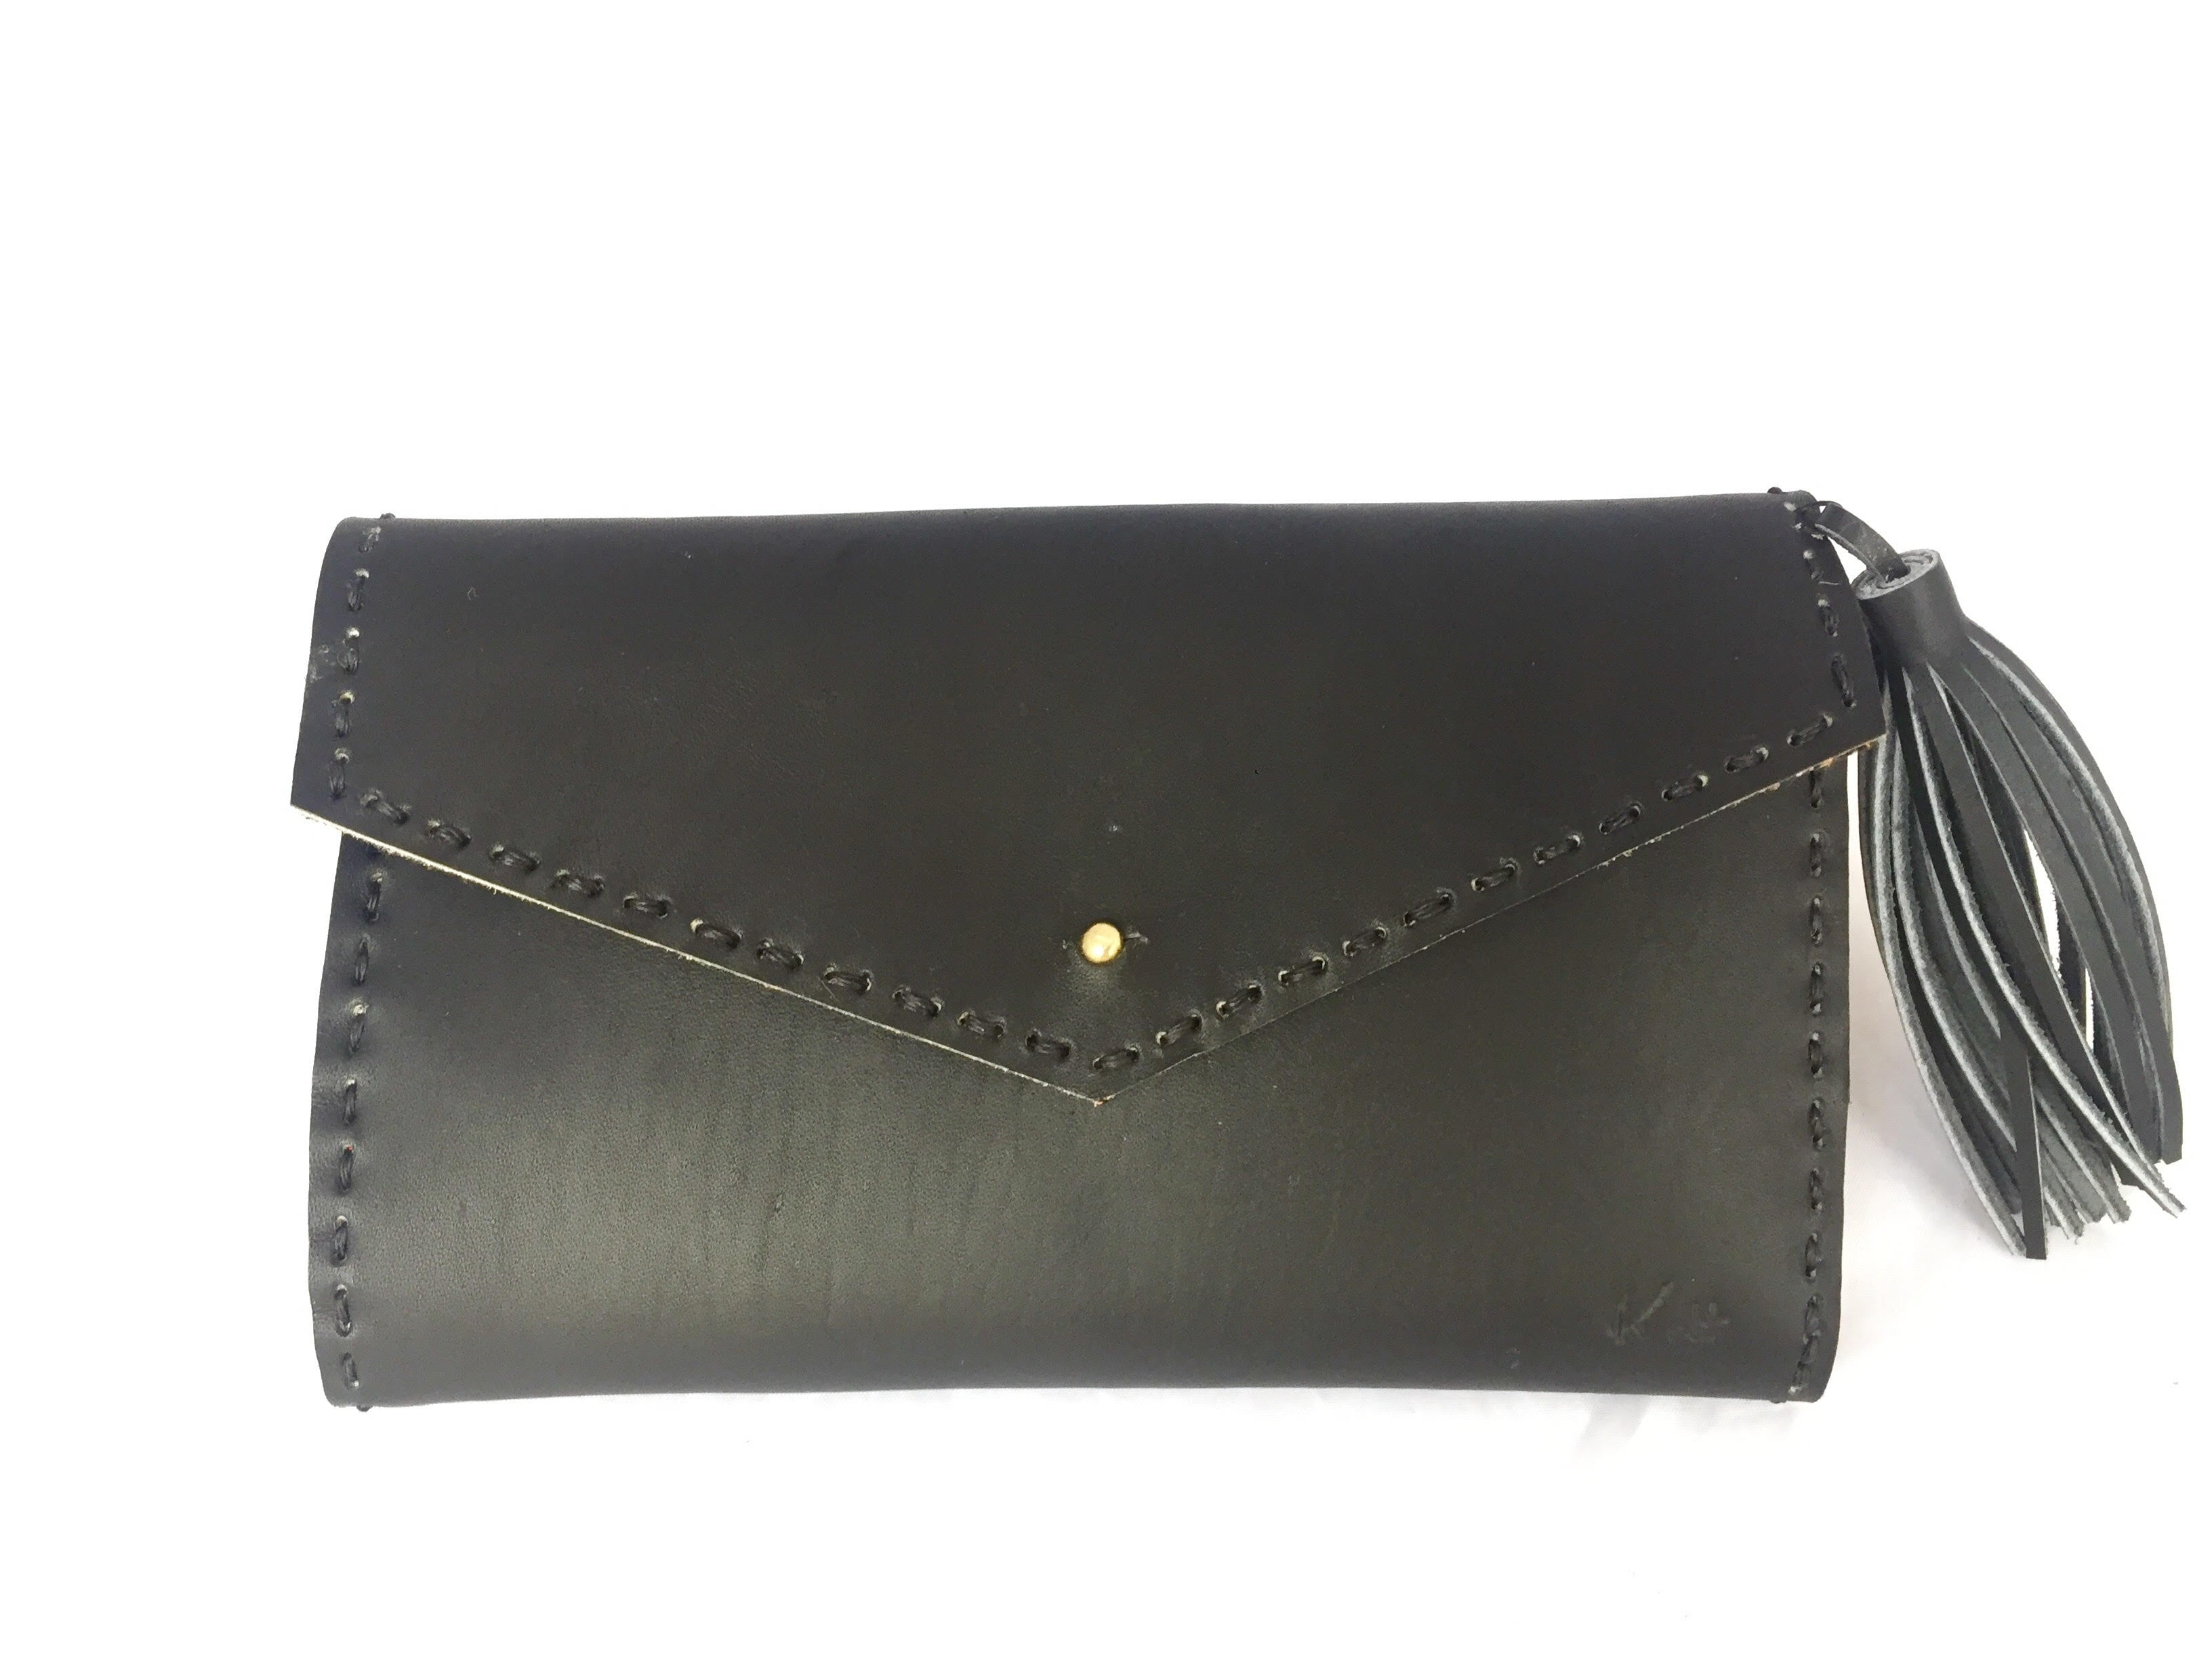 Handsewn Black Leather Wallet